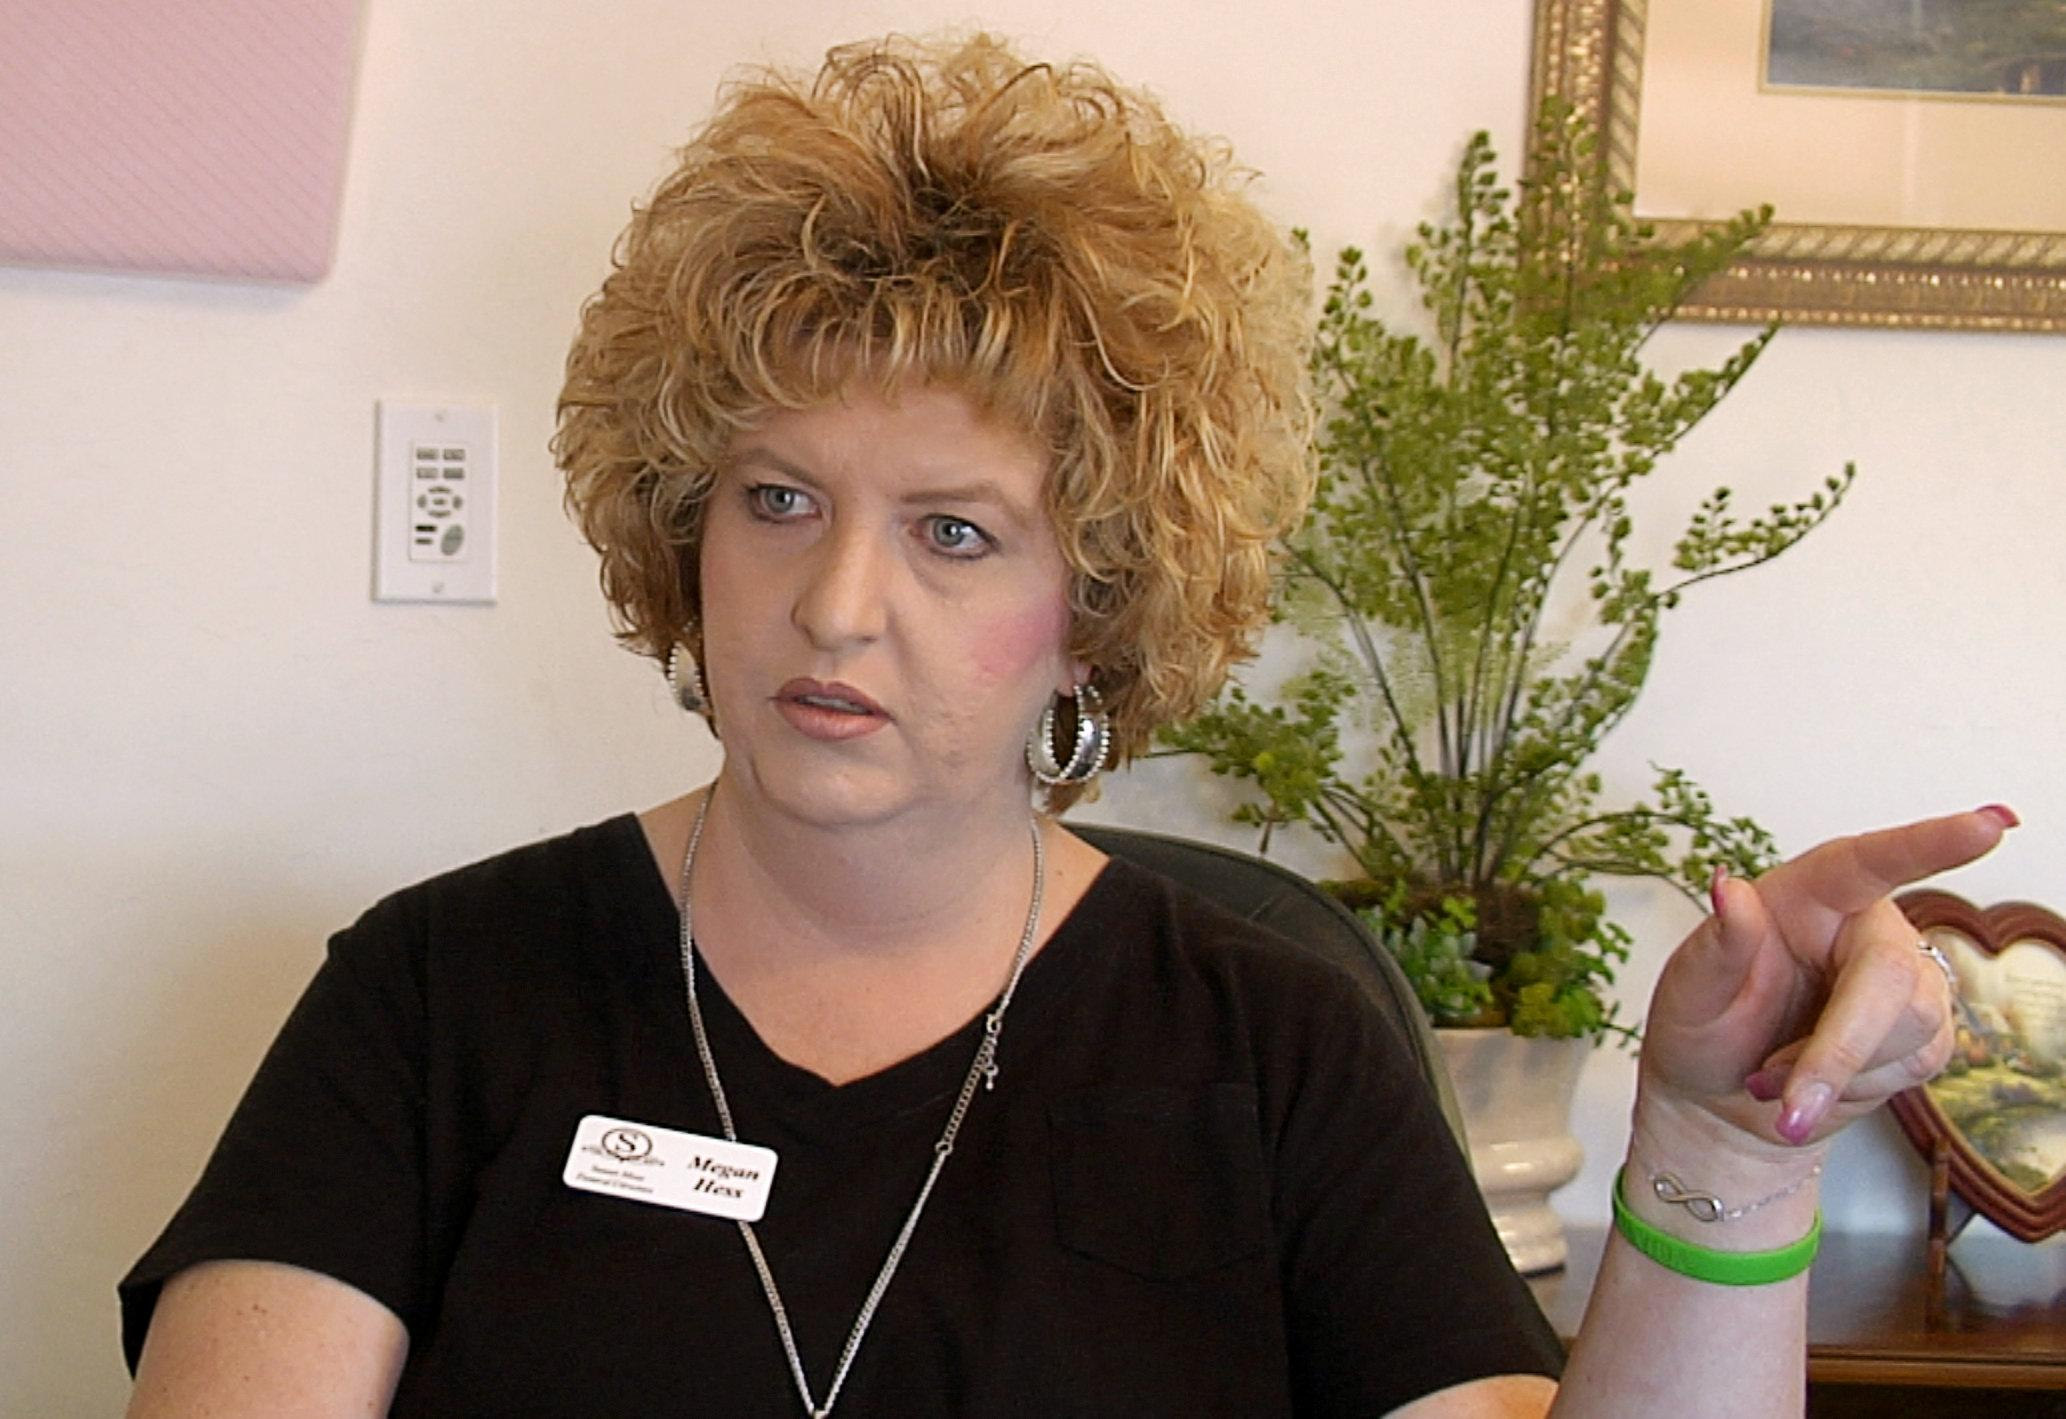 Colorado shuts down funeral home operated by body parts broker